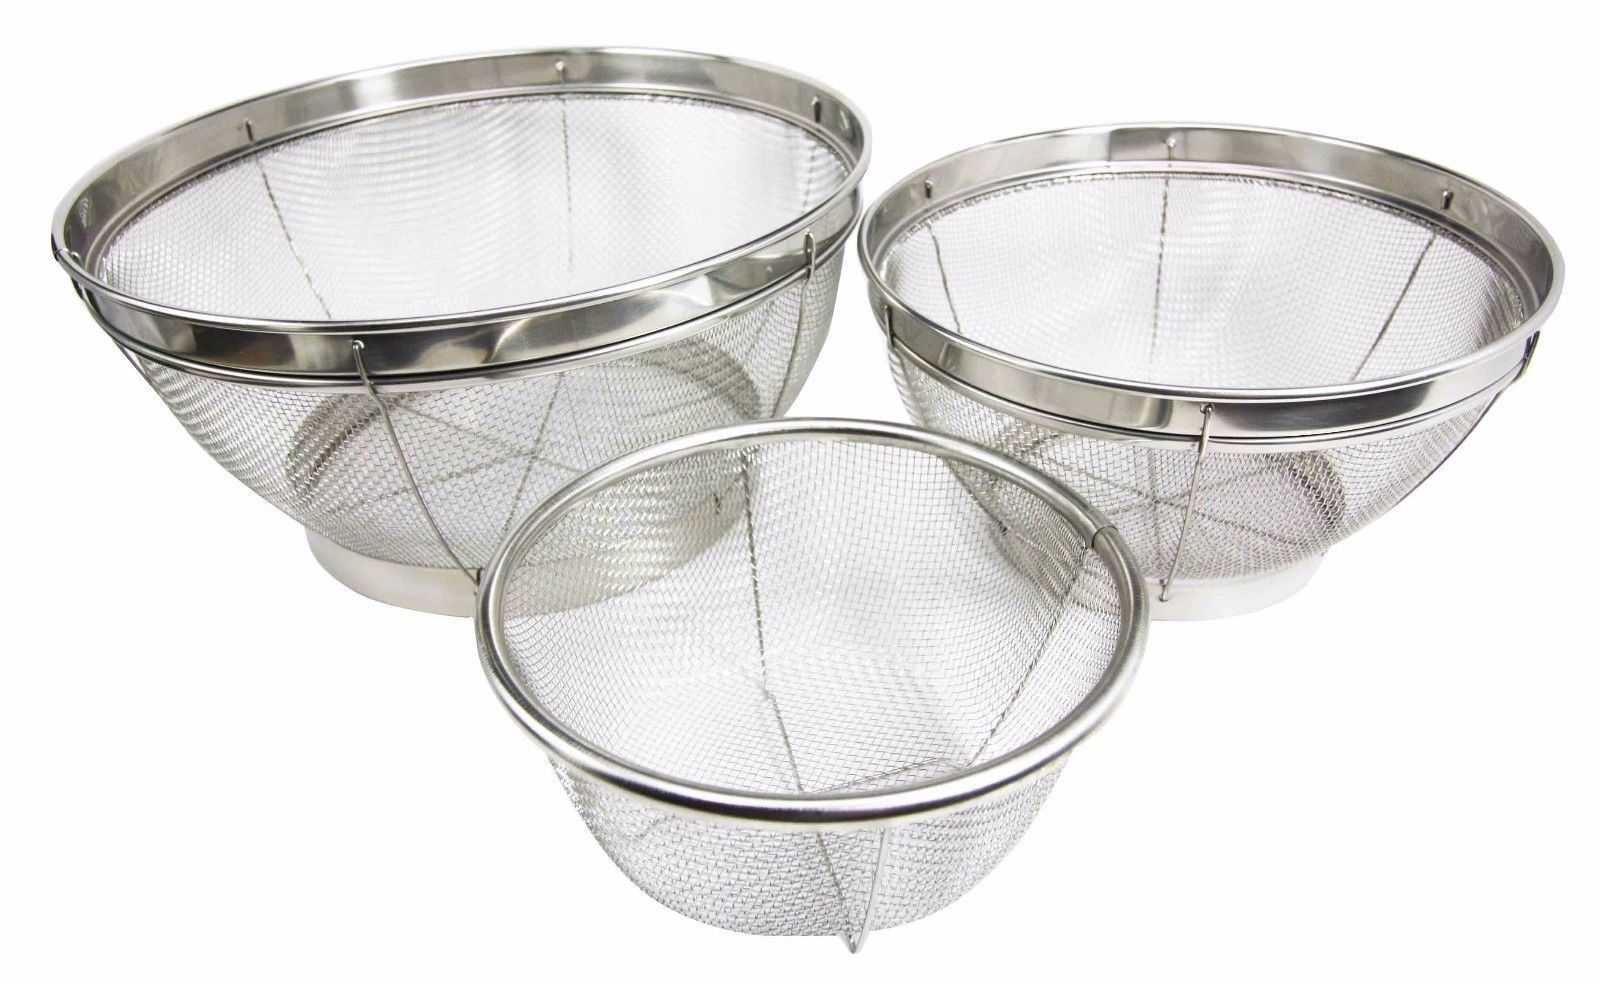 Set of Three Stainless Steel Wire Mesh Food Strainer Colander For ...